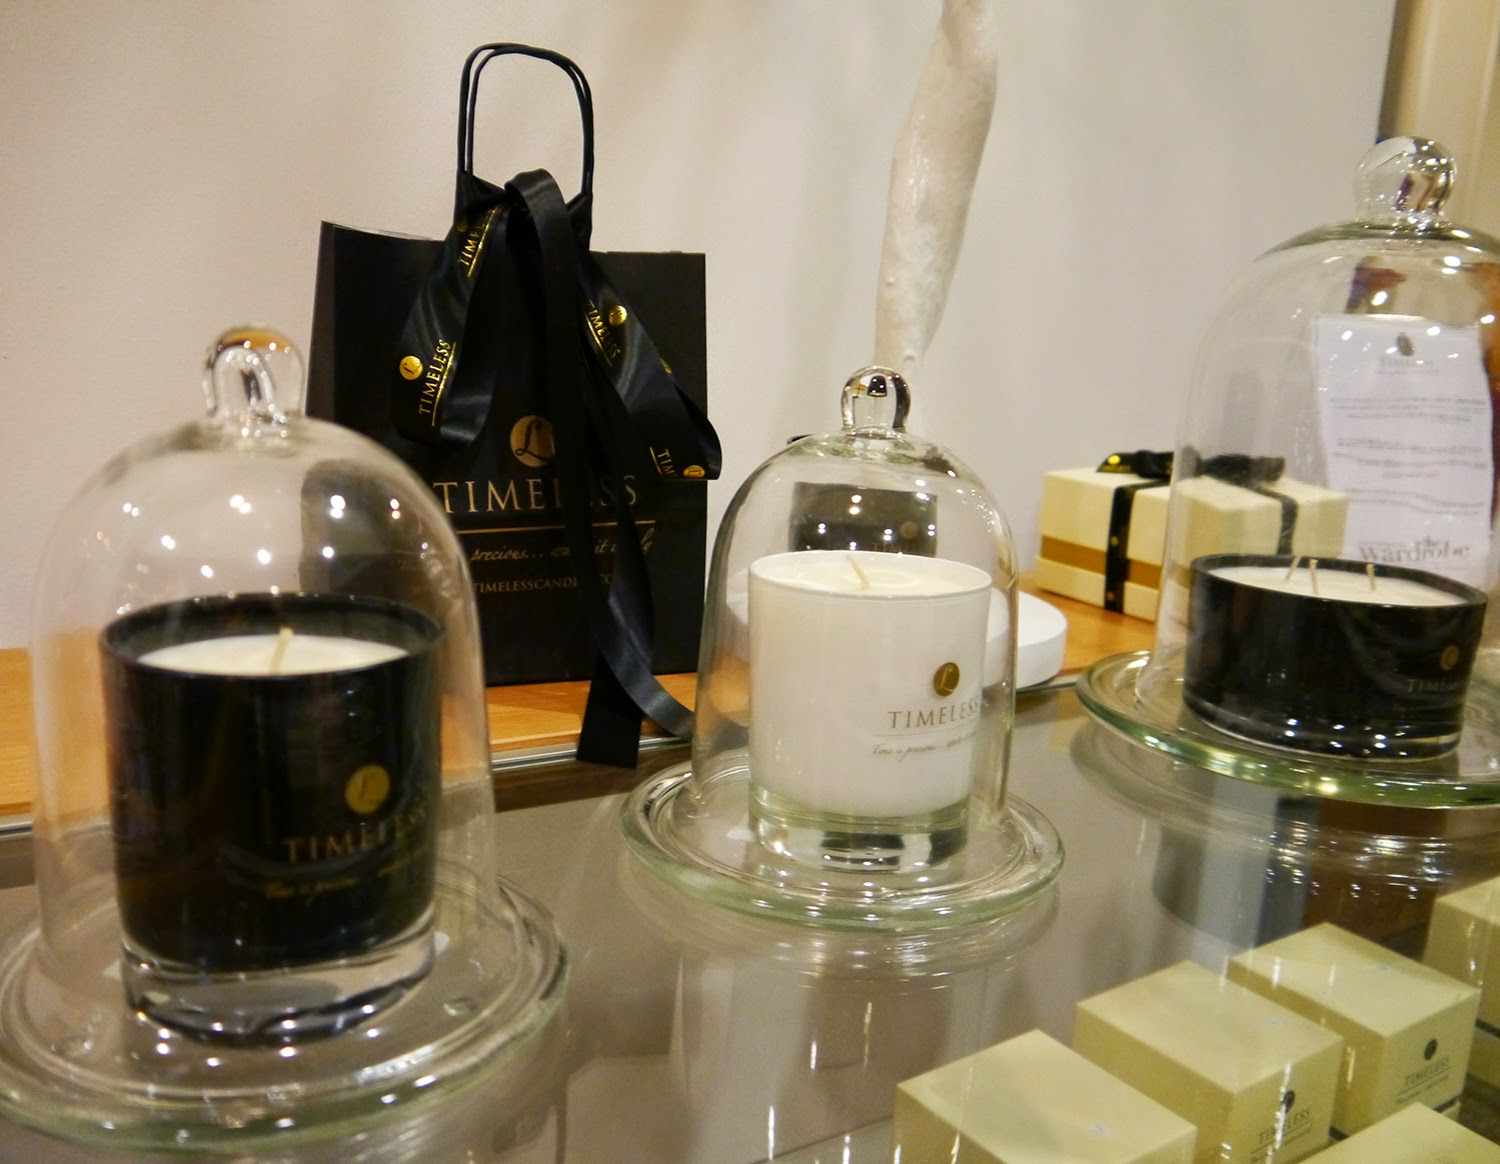 Wear Eponymous, The Wardrobe, Glasgow Fort, Glasgow Pop Up Shop, Shop Display, Scottish Design, Timeless Candles,